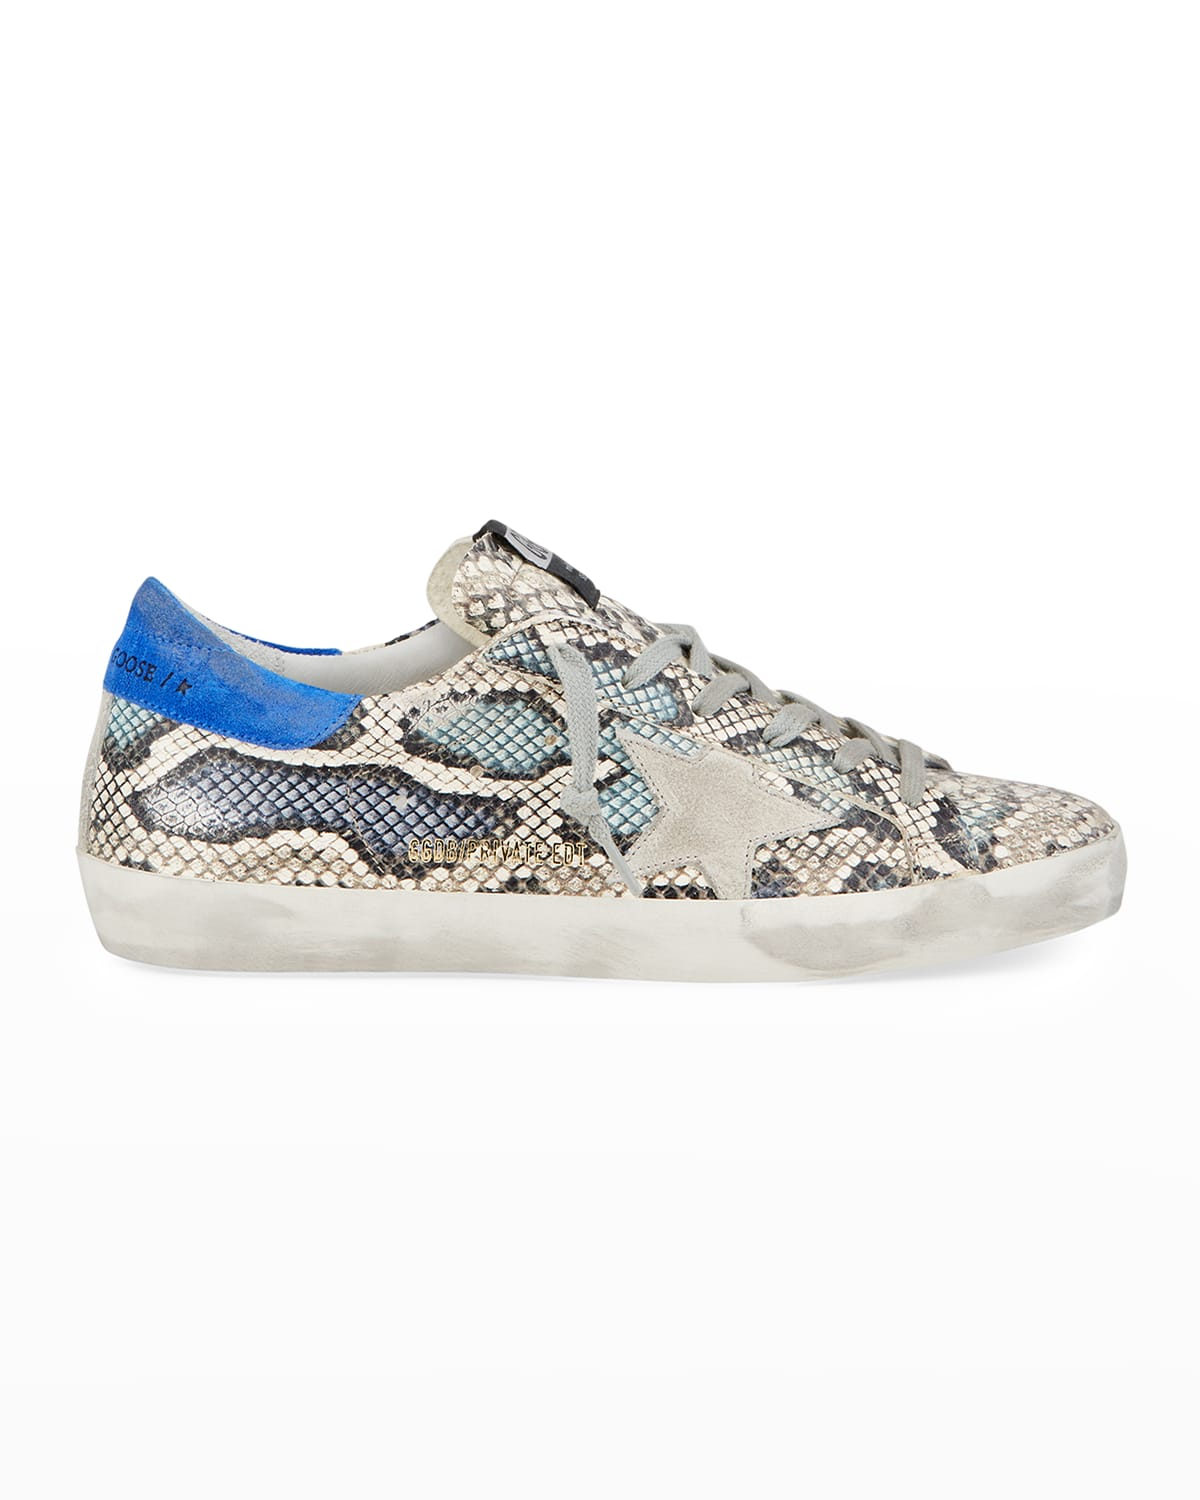 Superstar Multicolor Python-Print Sneakers